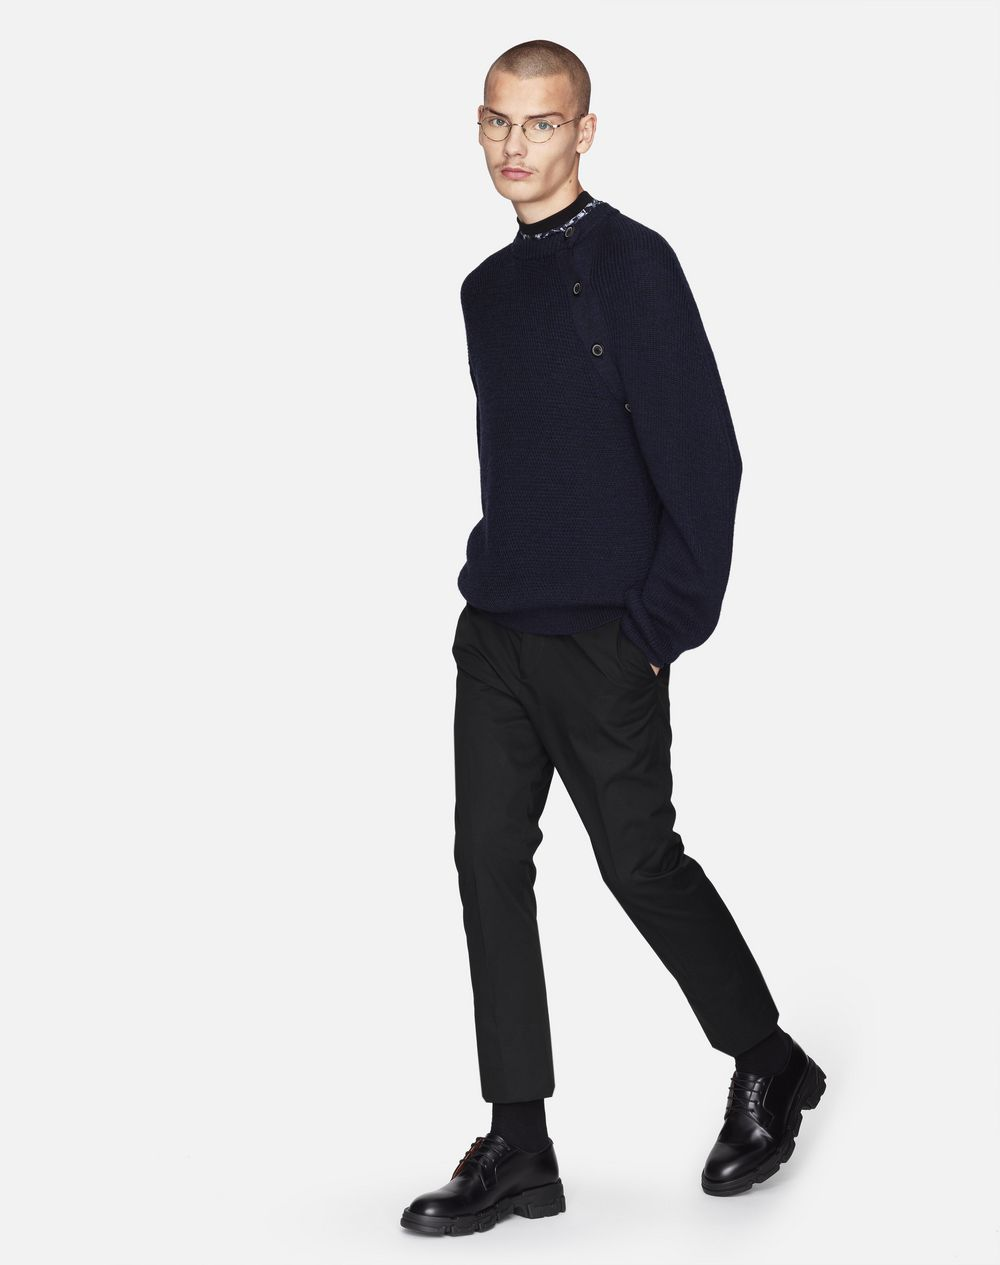 NAVY BLUE BUTTONED NECK SWEATER - Lanvin